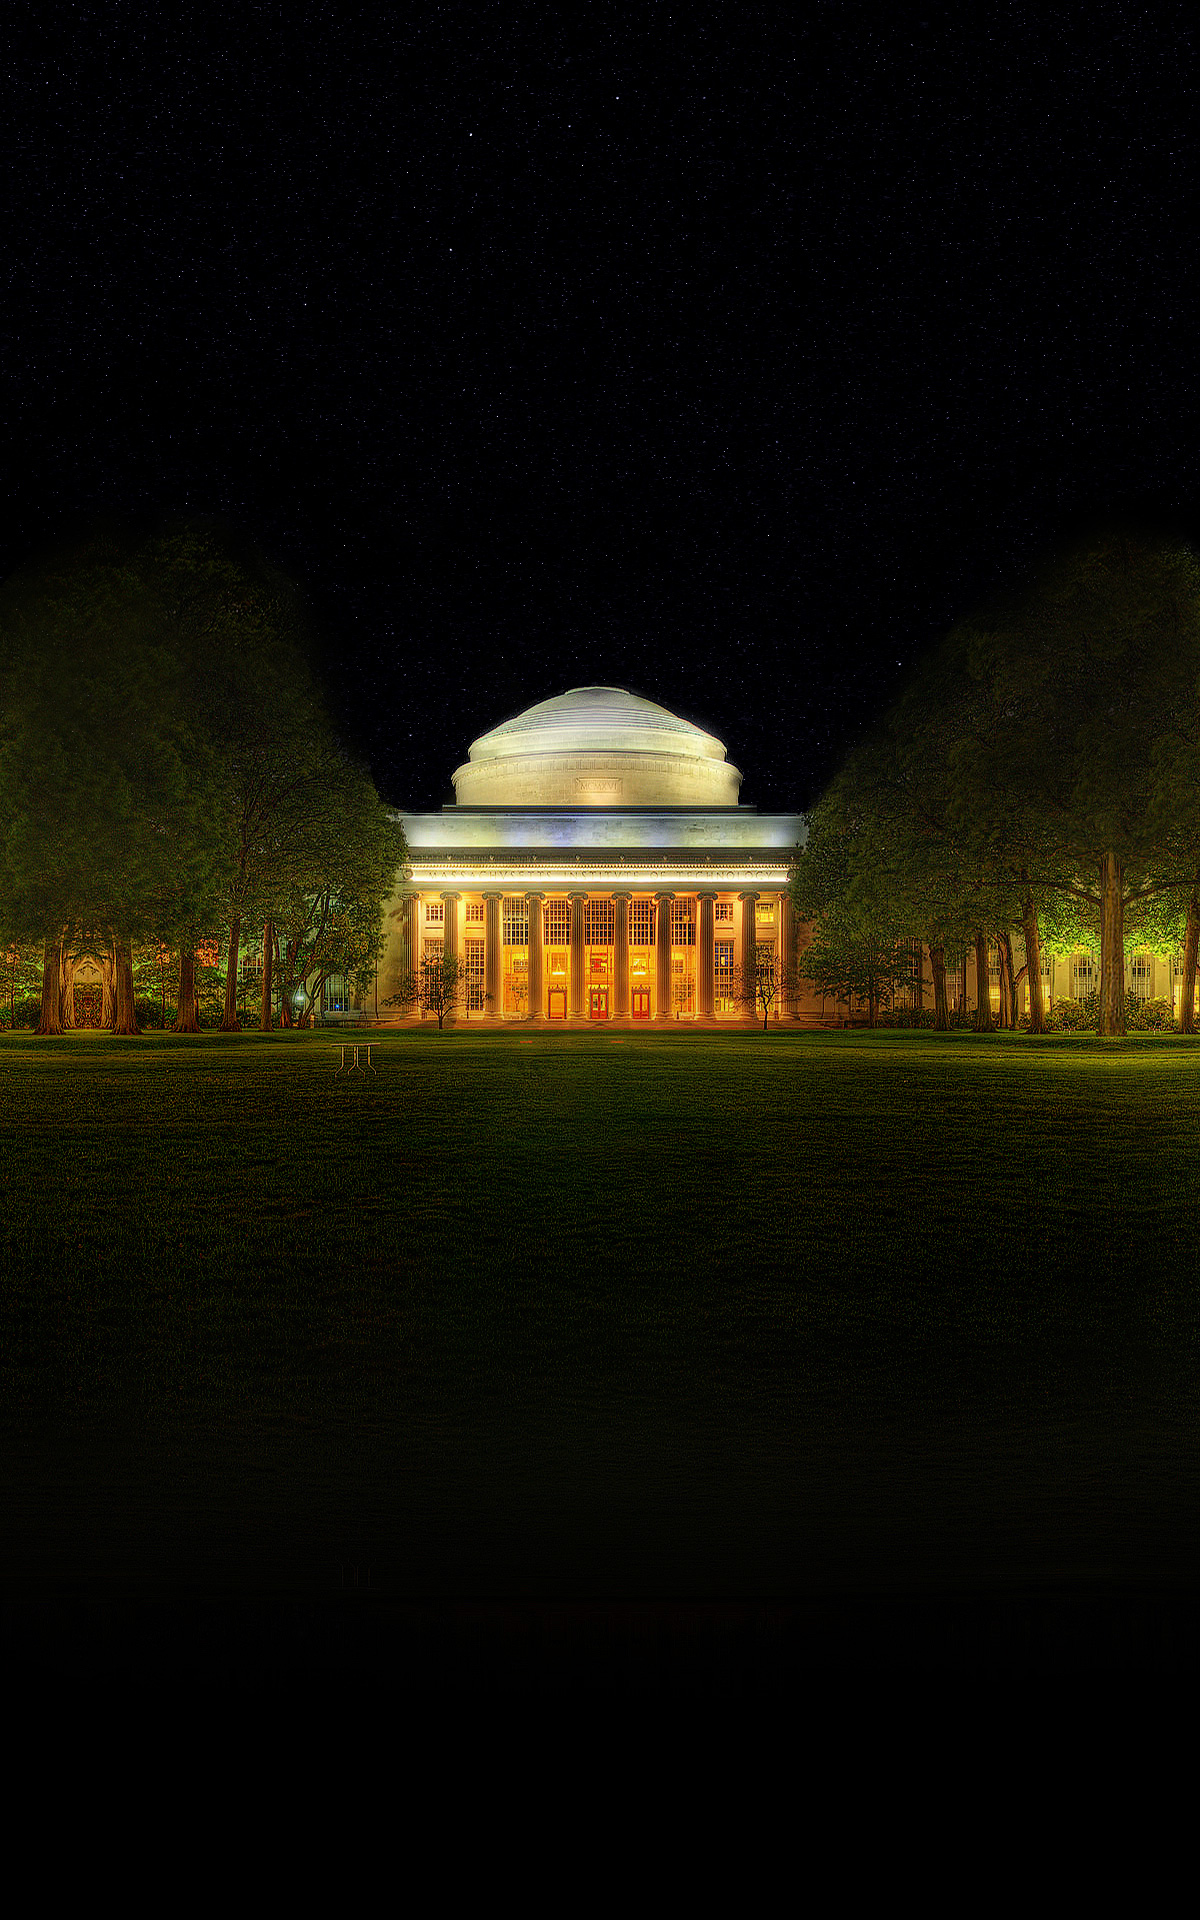 mit wallpapers amp backgrounds massachusetts institute of